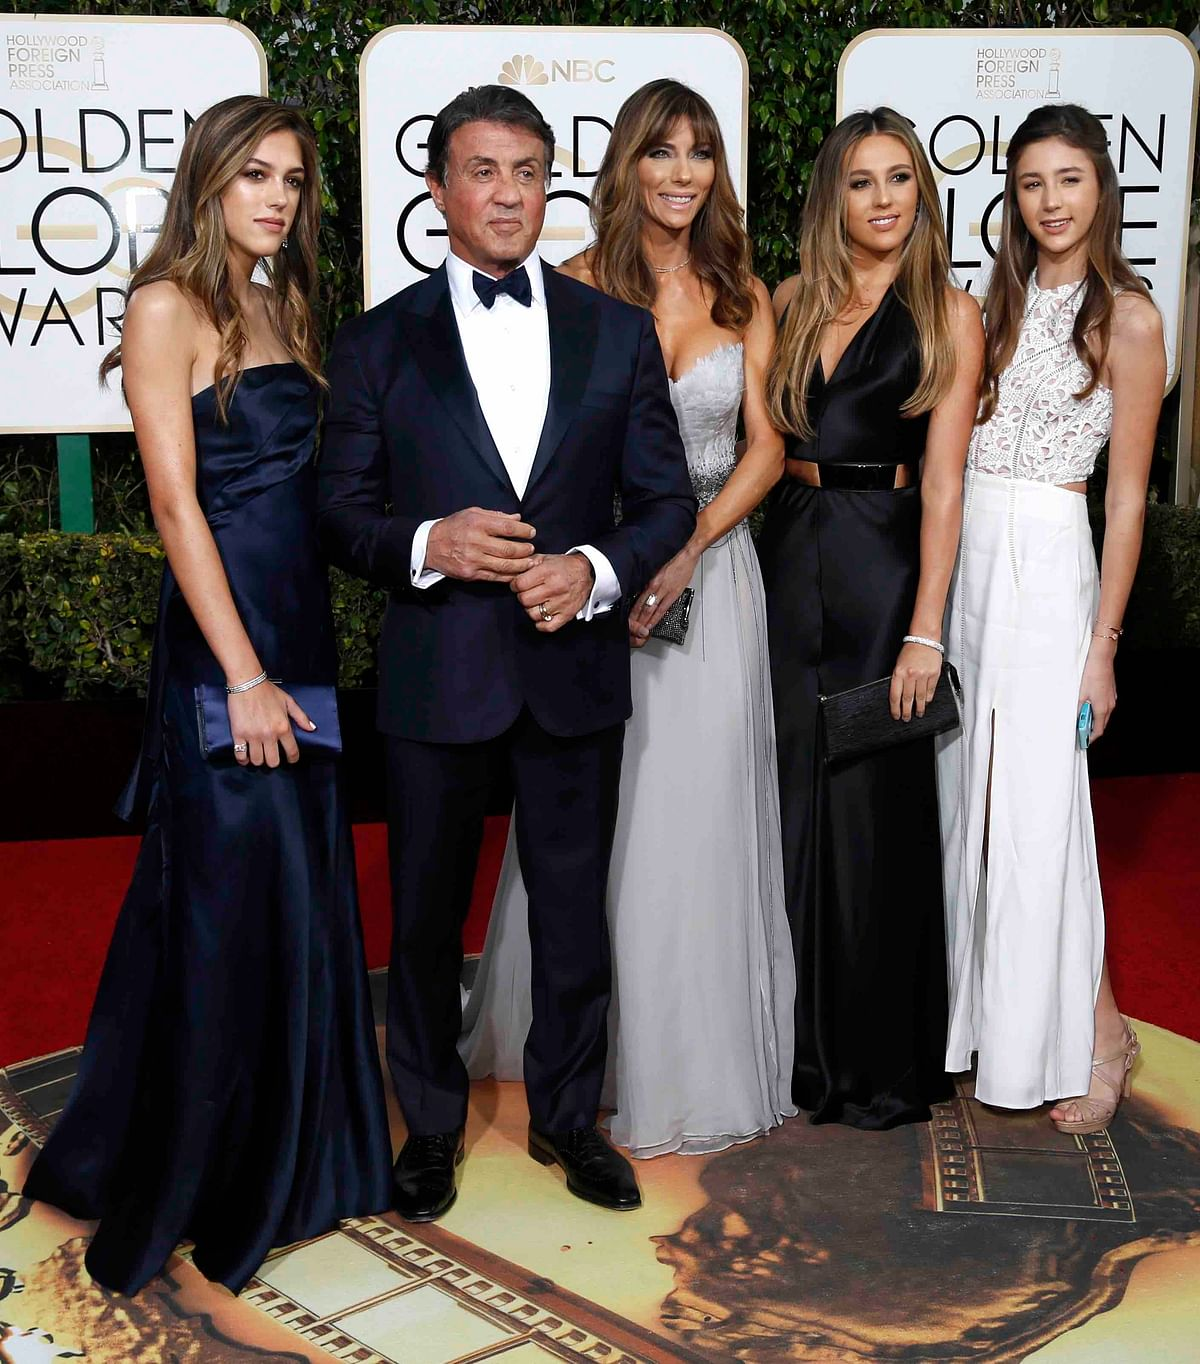 Sylvester Stallone poses with his wife and daughter in a deep blue suit (Photo: Reuters)